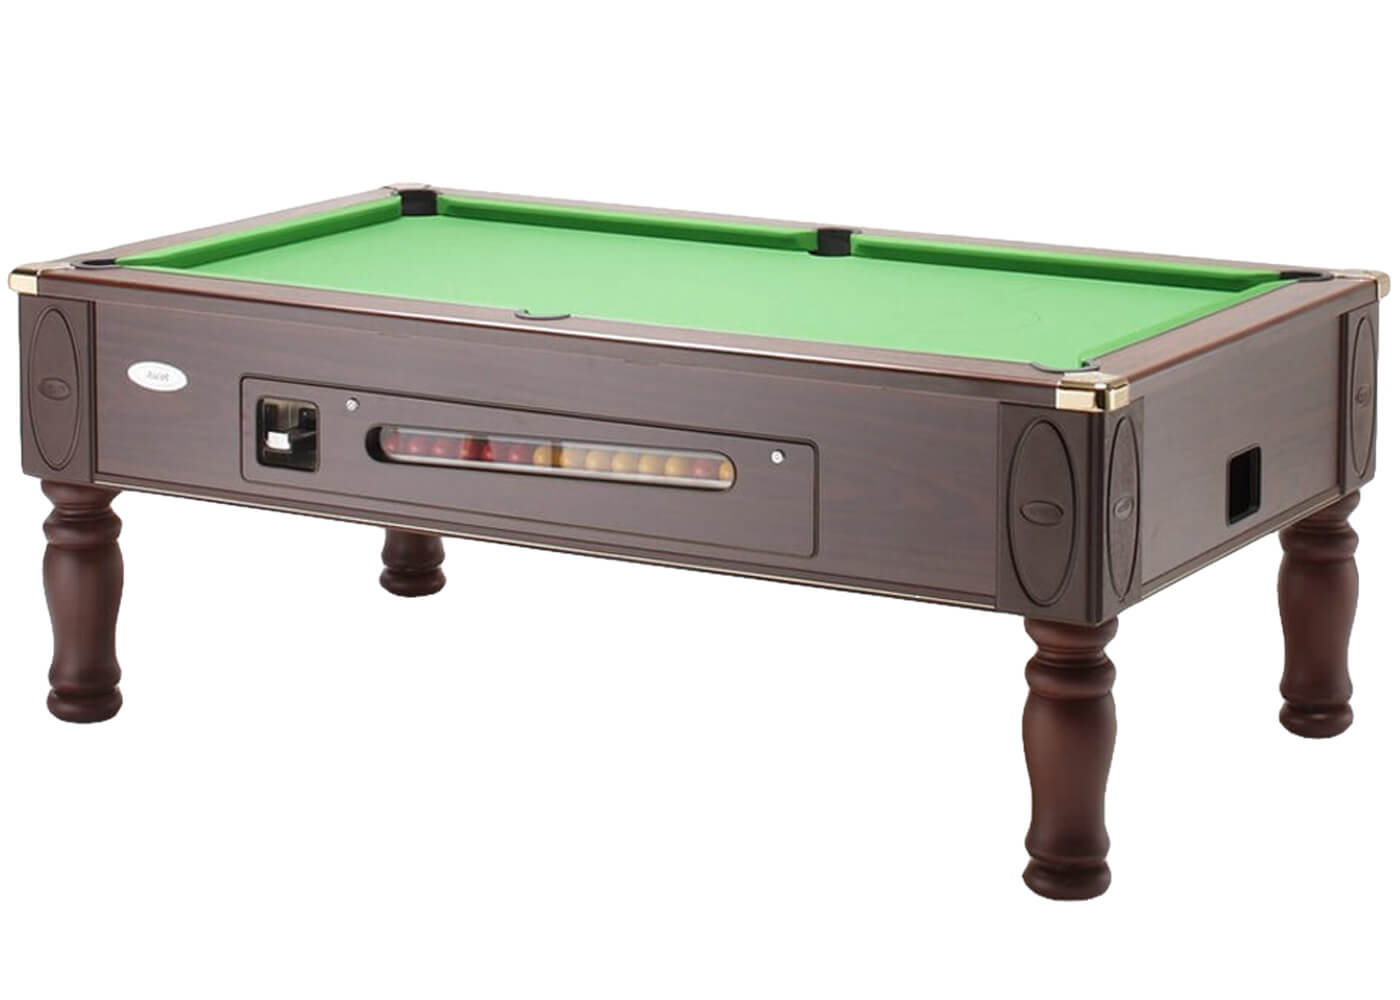 Surprising Ascot Slate Bed Pool Table Download Free Architecture Designs Xaembritishbridgeorg